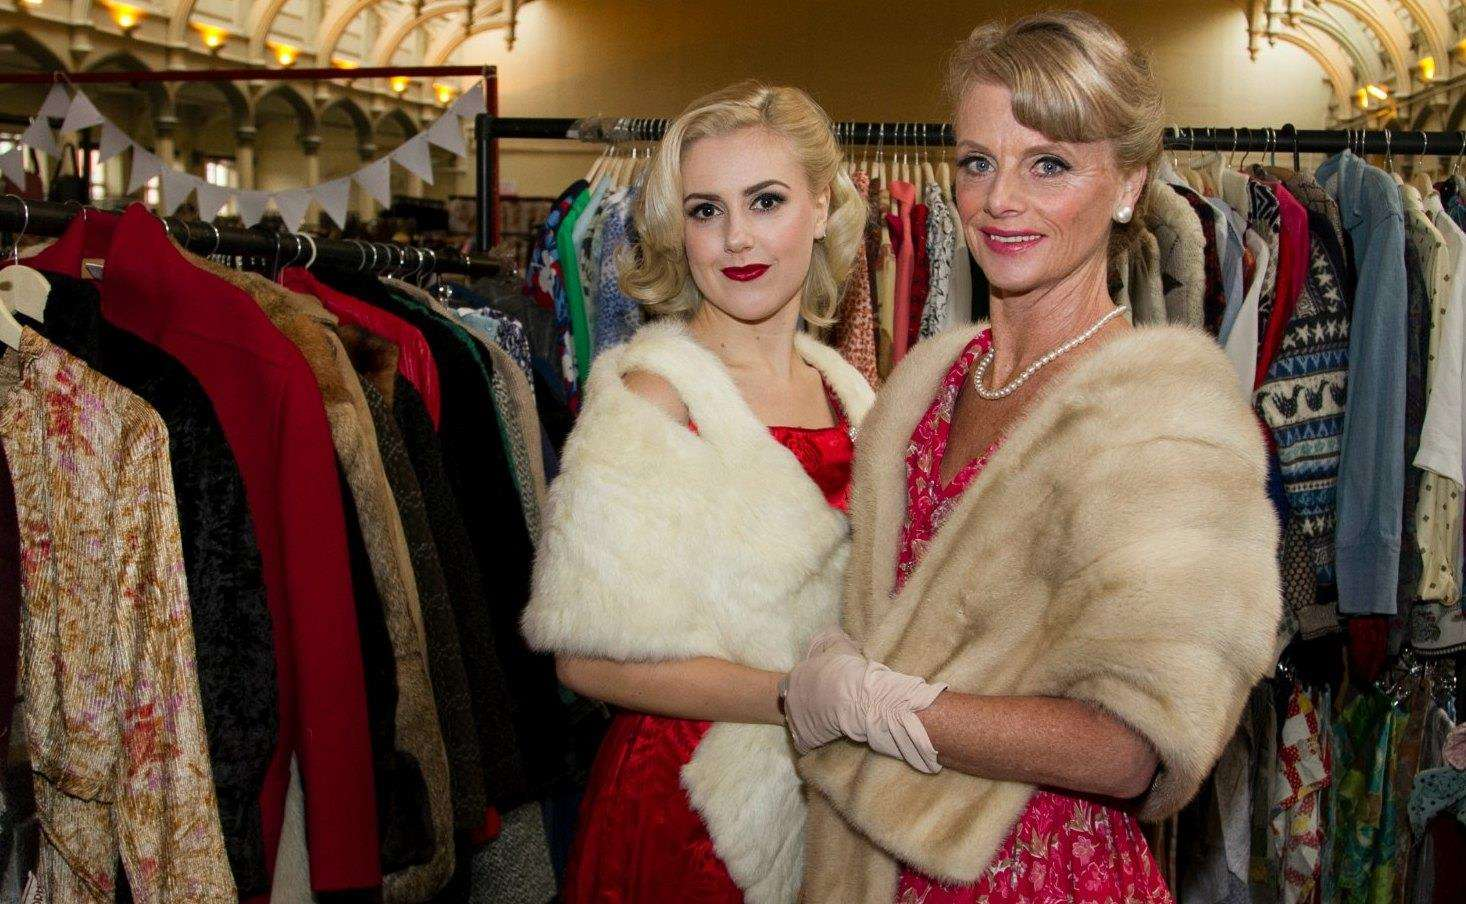 A range of vintage items will be available at the event. Picture: Lou Lou's Vintage Fair